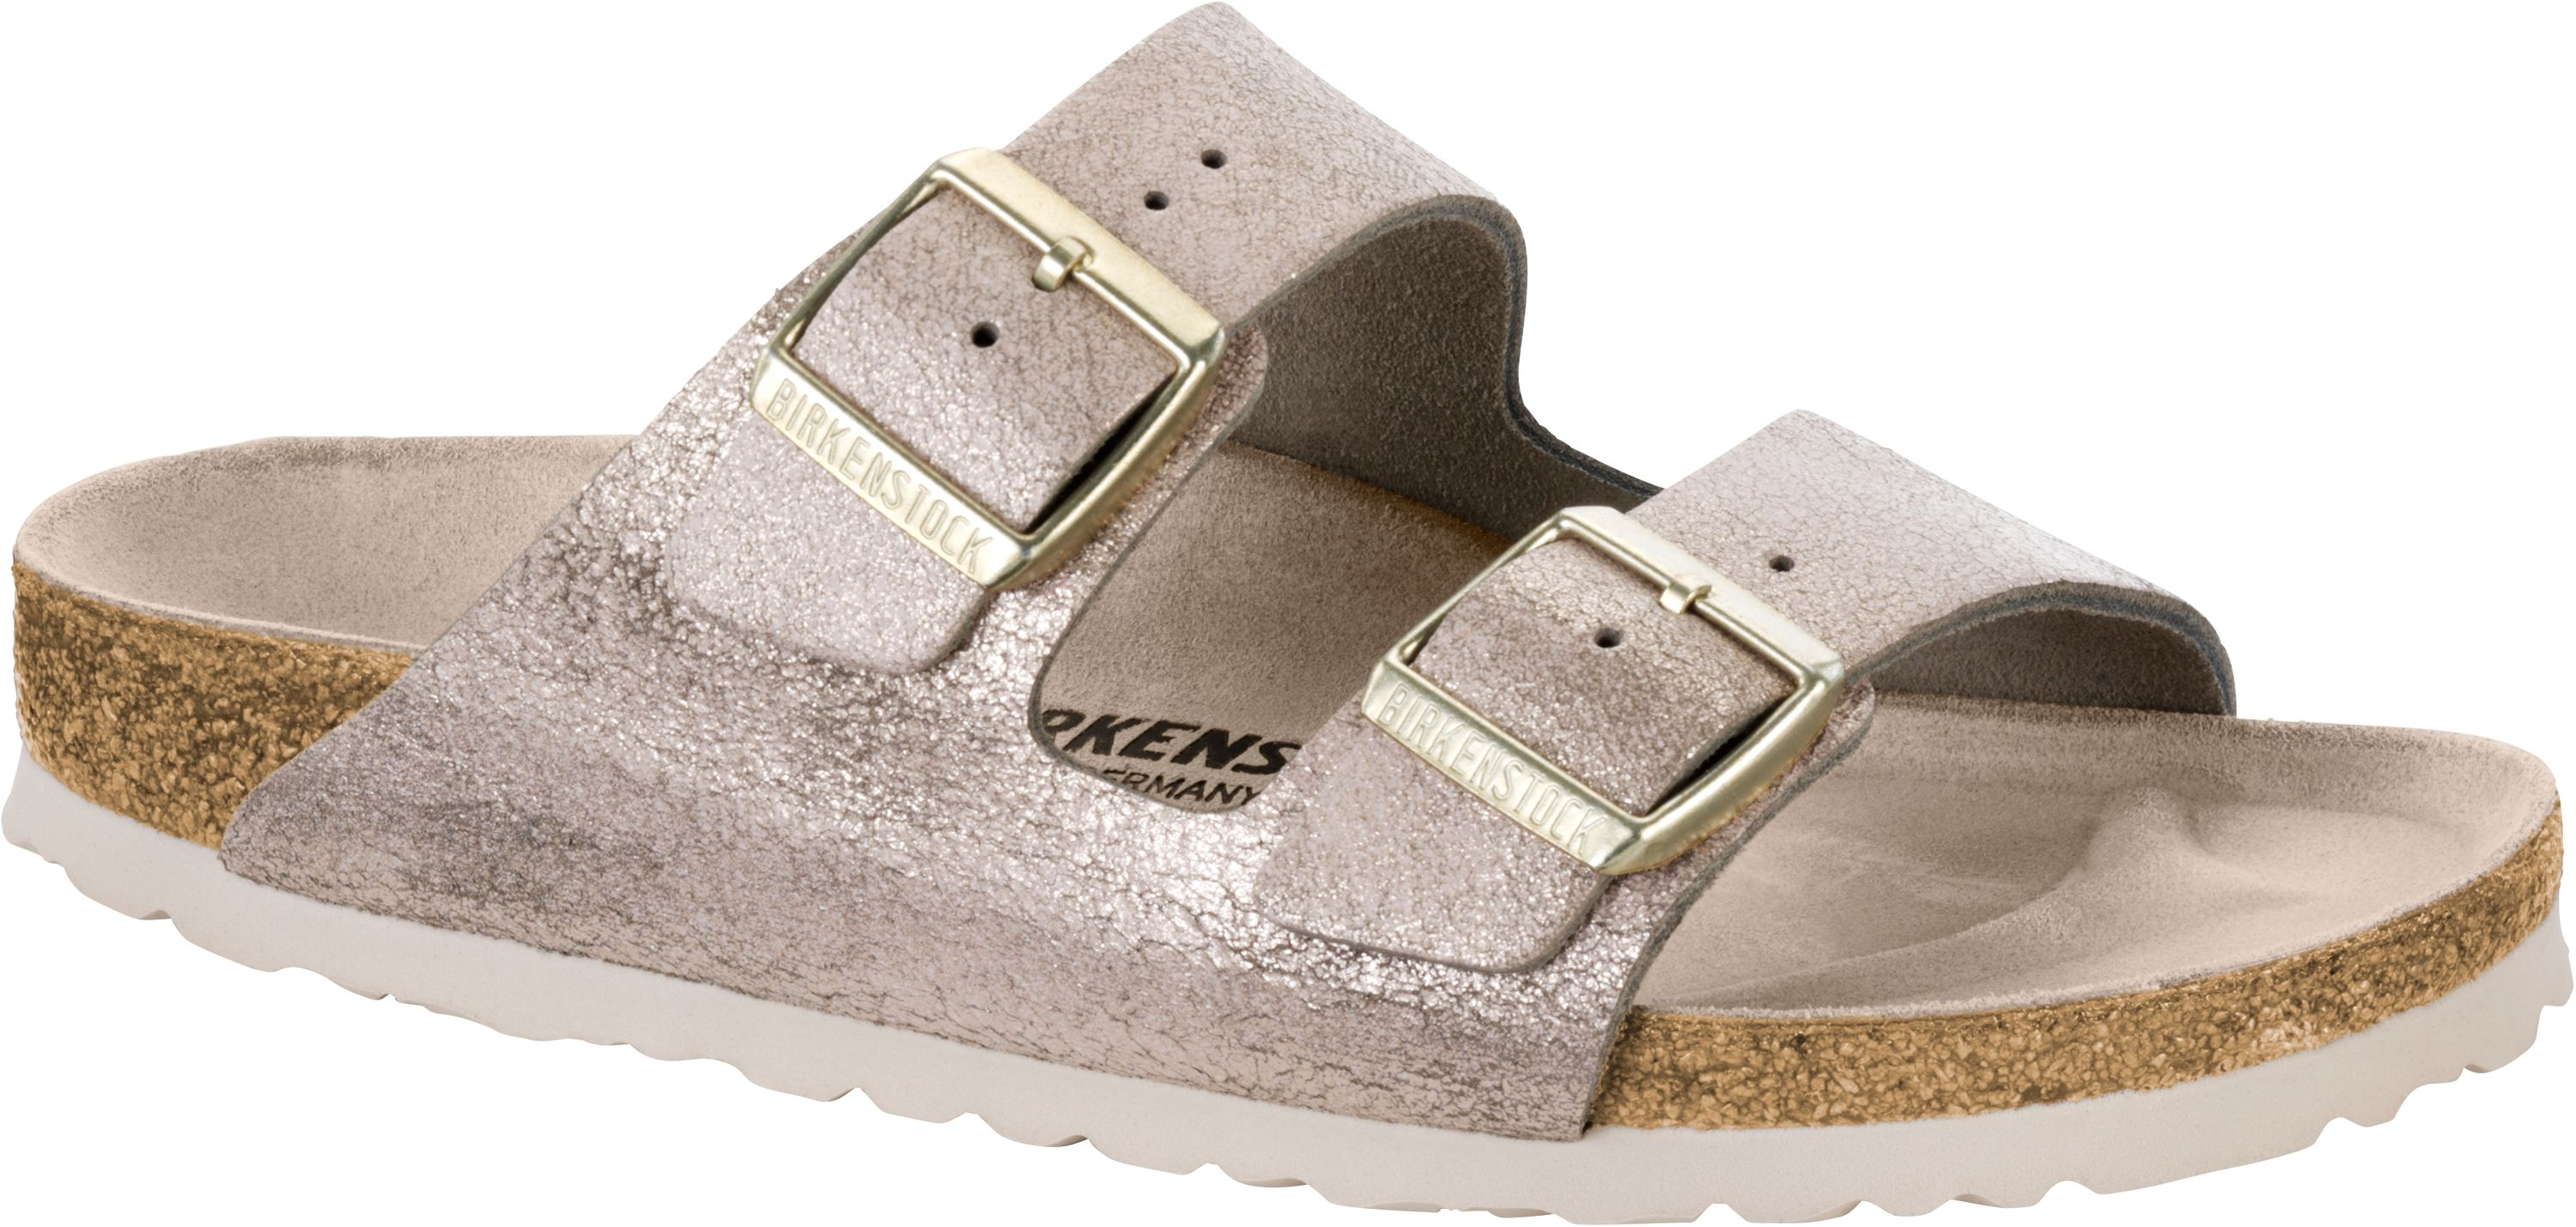 BIRKENSTOCK Pantolette Arizona washed metallic rose gold Gr. 35 43 1008800